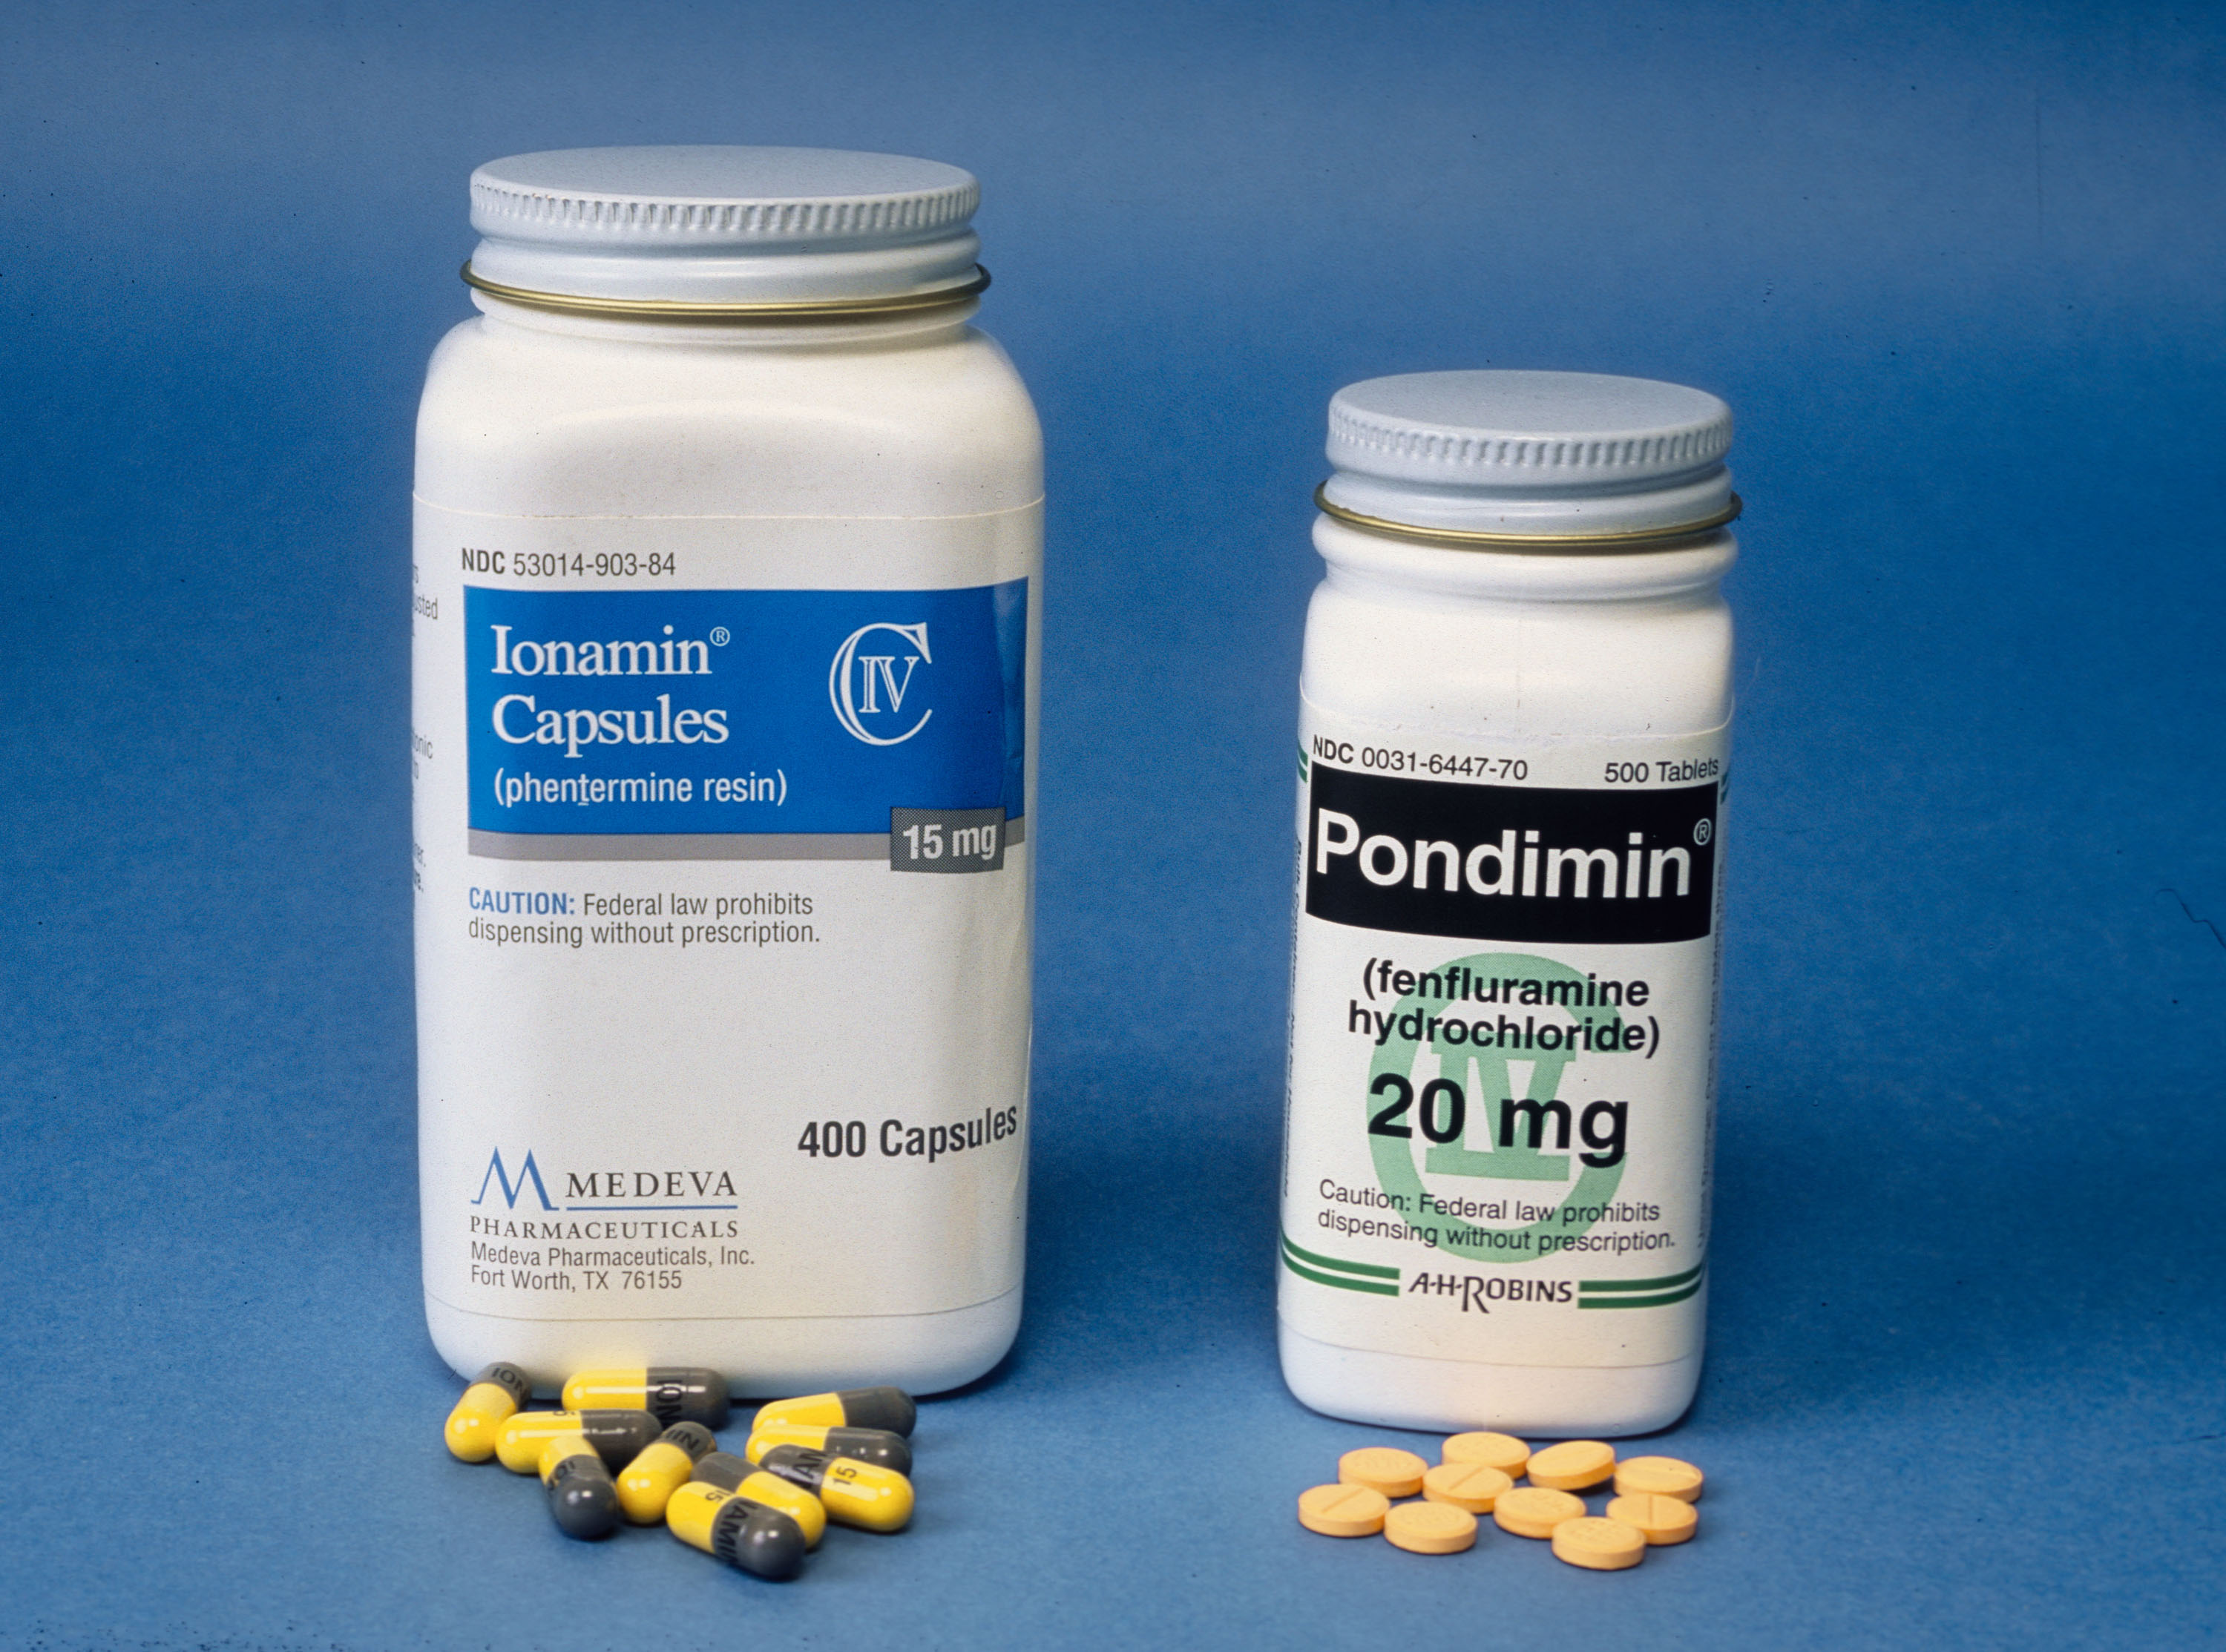 Buy herbal phen fen - Bottles Of Phentermine And Fenfluramine Commonly Known As Phen Fen Credit